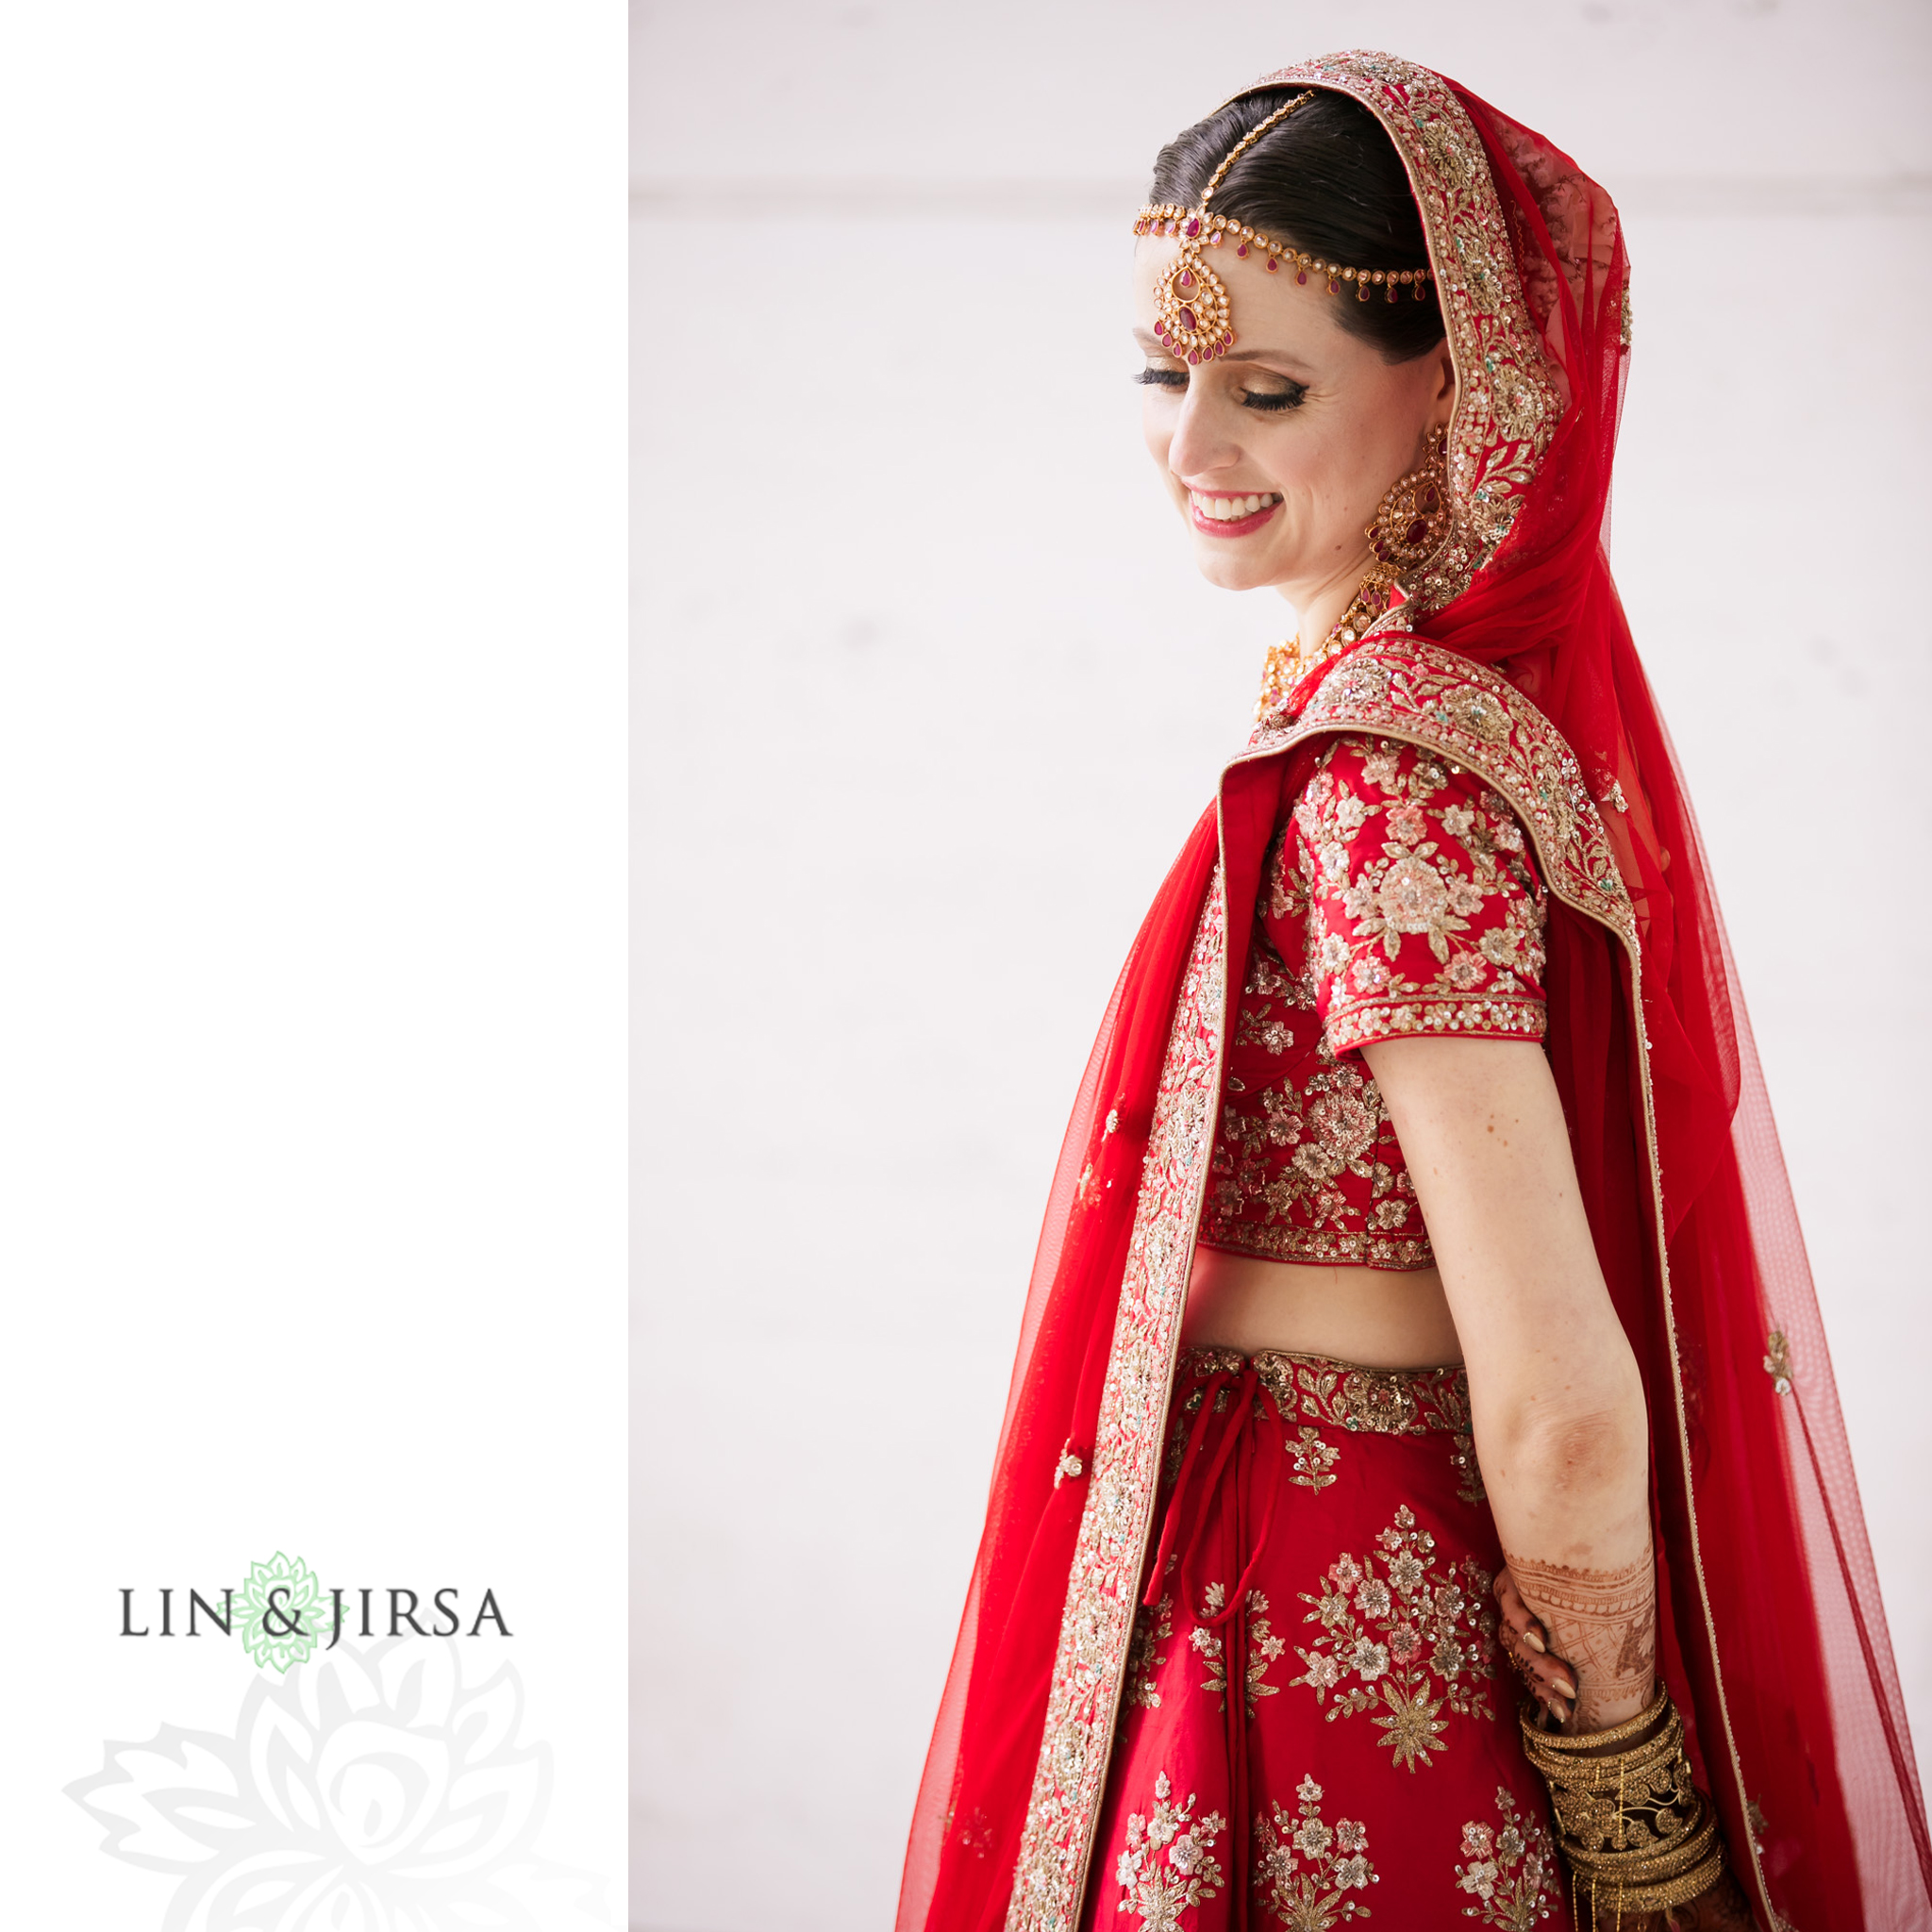 06 Hotel Irvine Multicultural Indian Wedding Photography